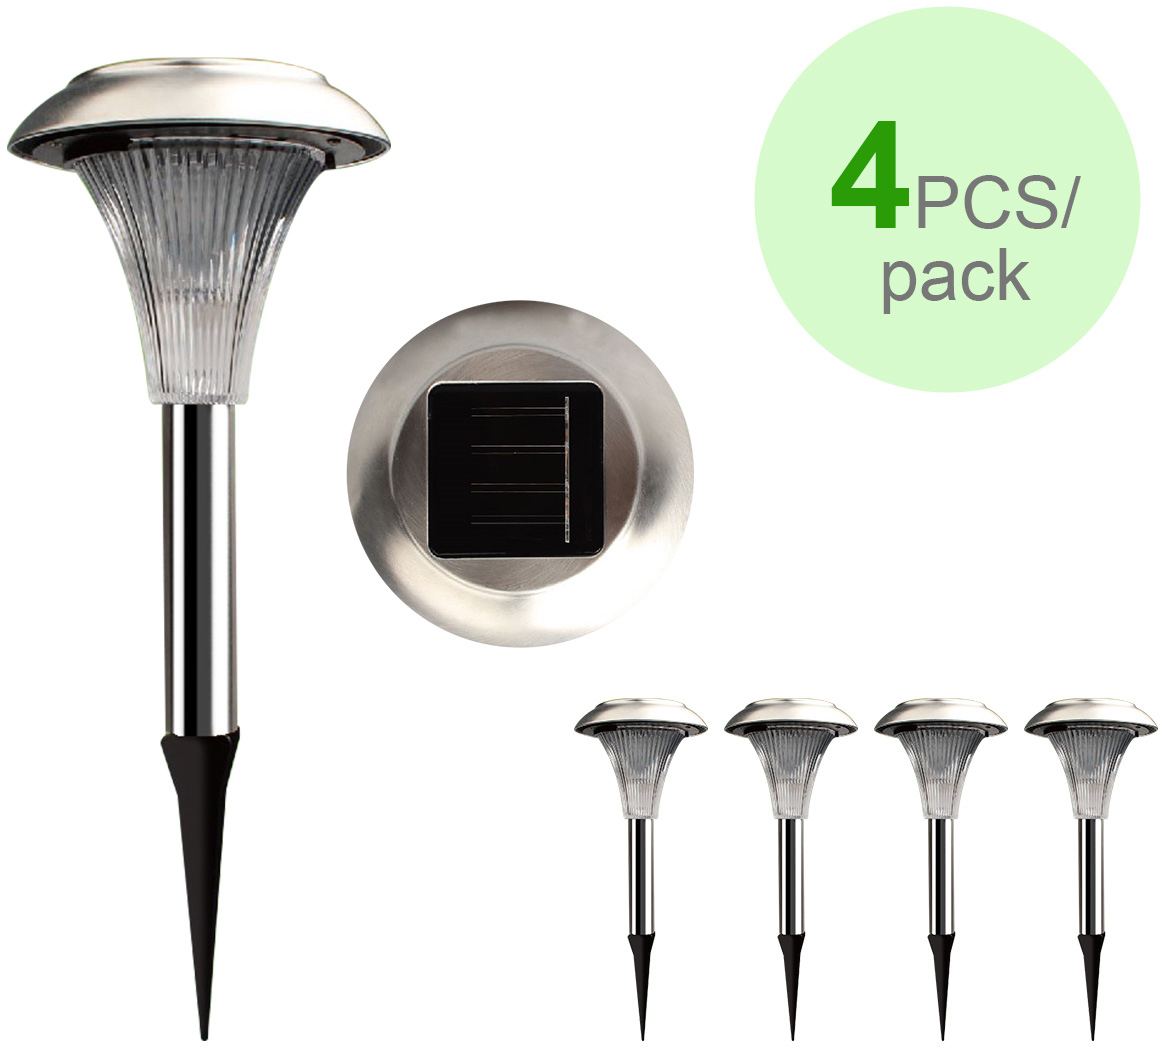 2 Colour Changing Led Stainless Steel Solar Stake Lights: Product Features: